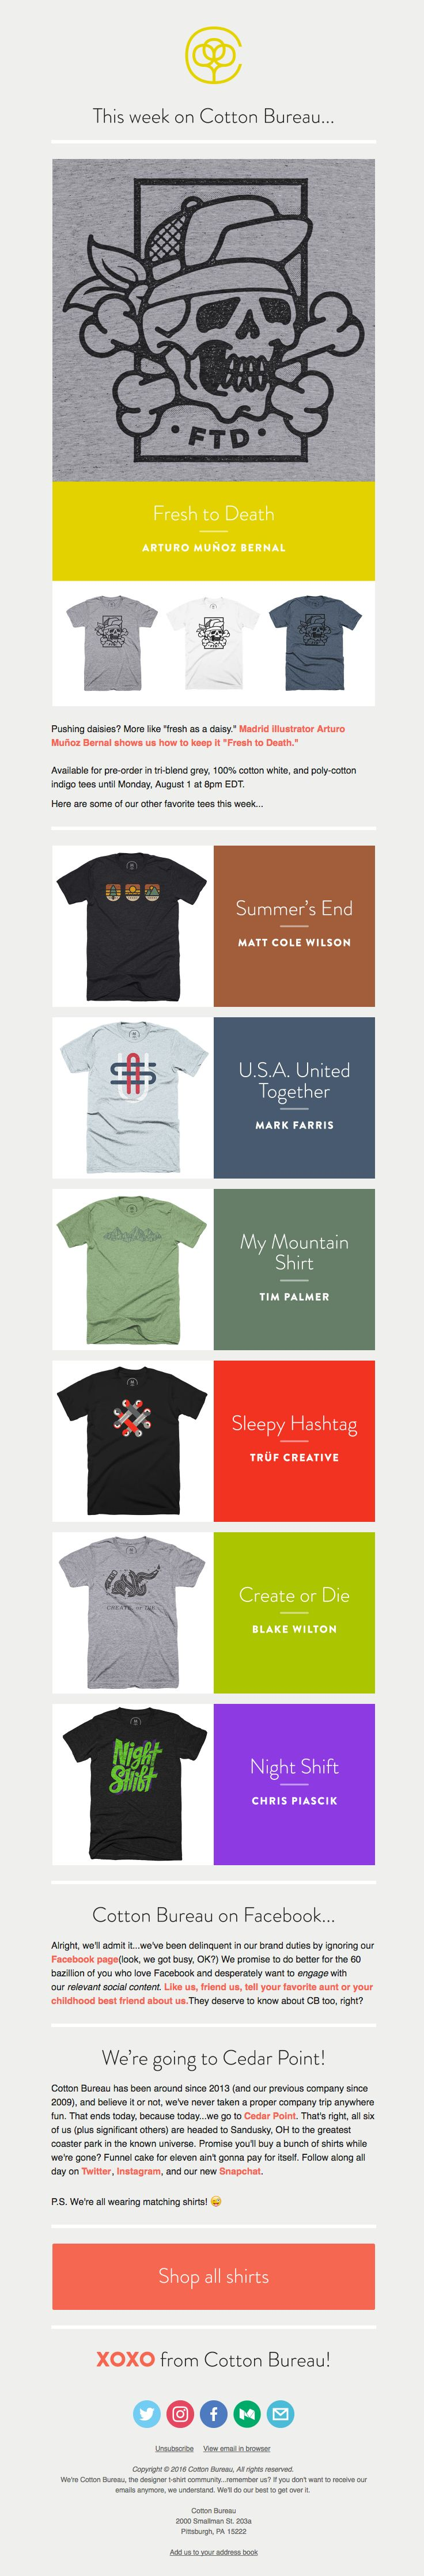 Cotton Bureau sent this email with the subject line: T-Shirt Tuesday from Cotton Bureau - Read about this email and find more featured product emails at ReallyGoodEmails.com #ecommerce #featuredproduct #marketing